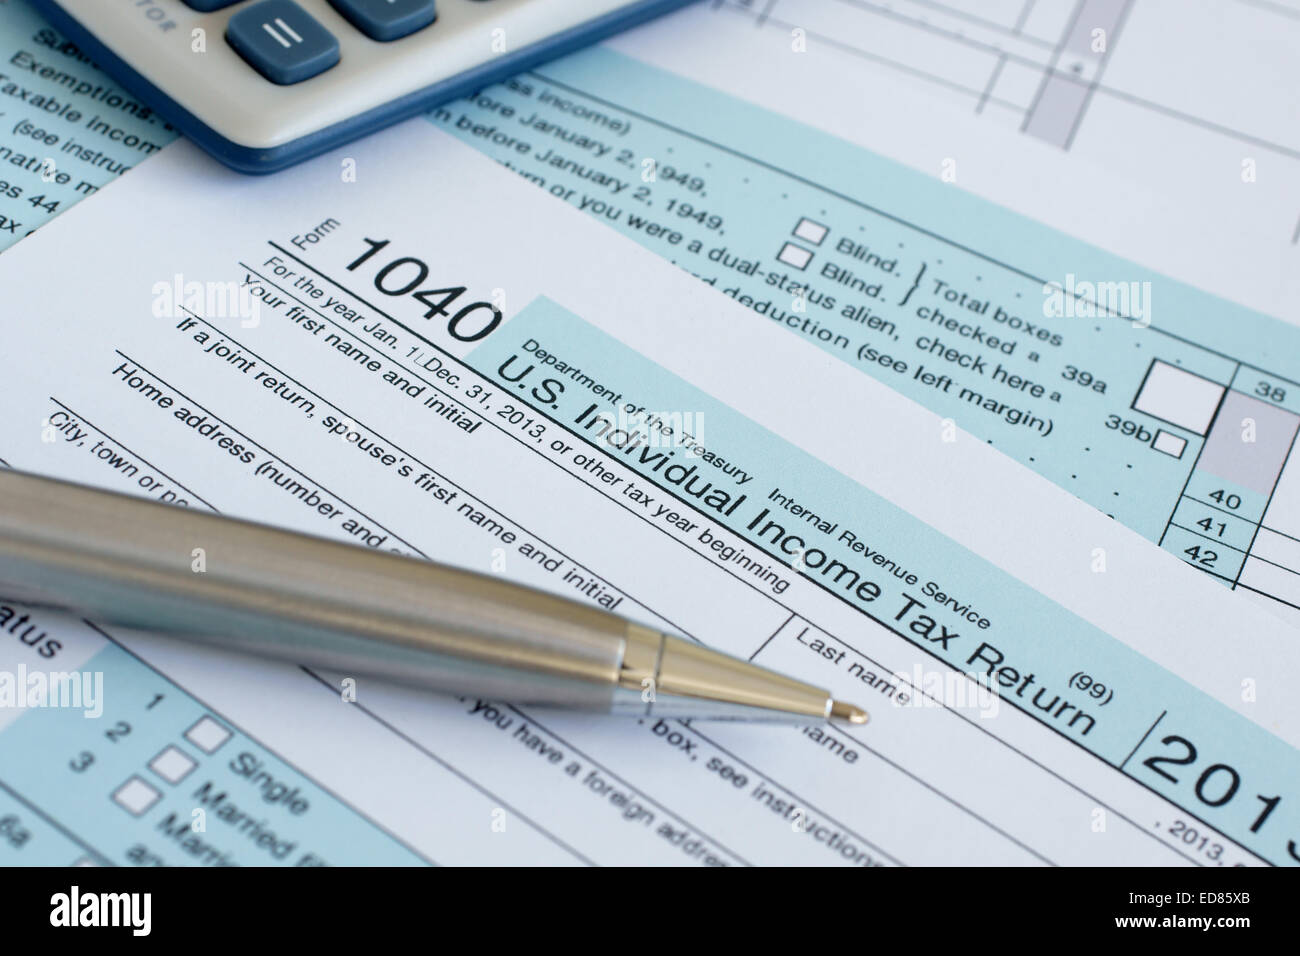 United States federal income tax return IRS 1040 documents - Stock Image